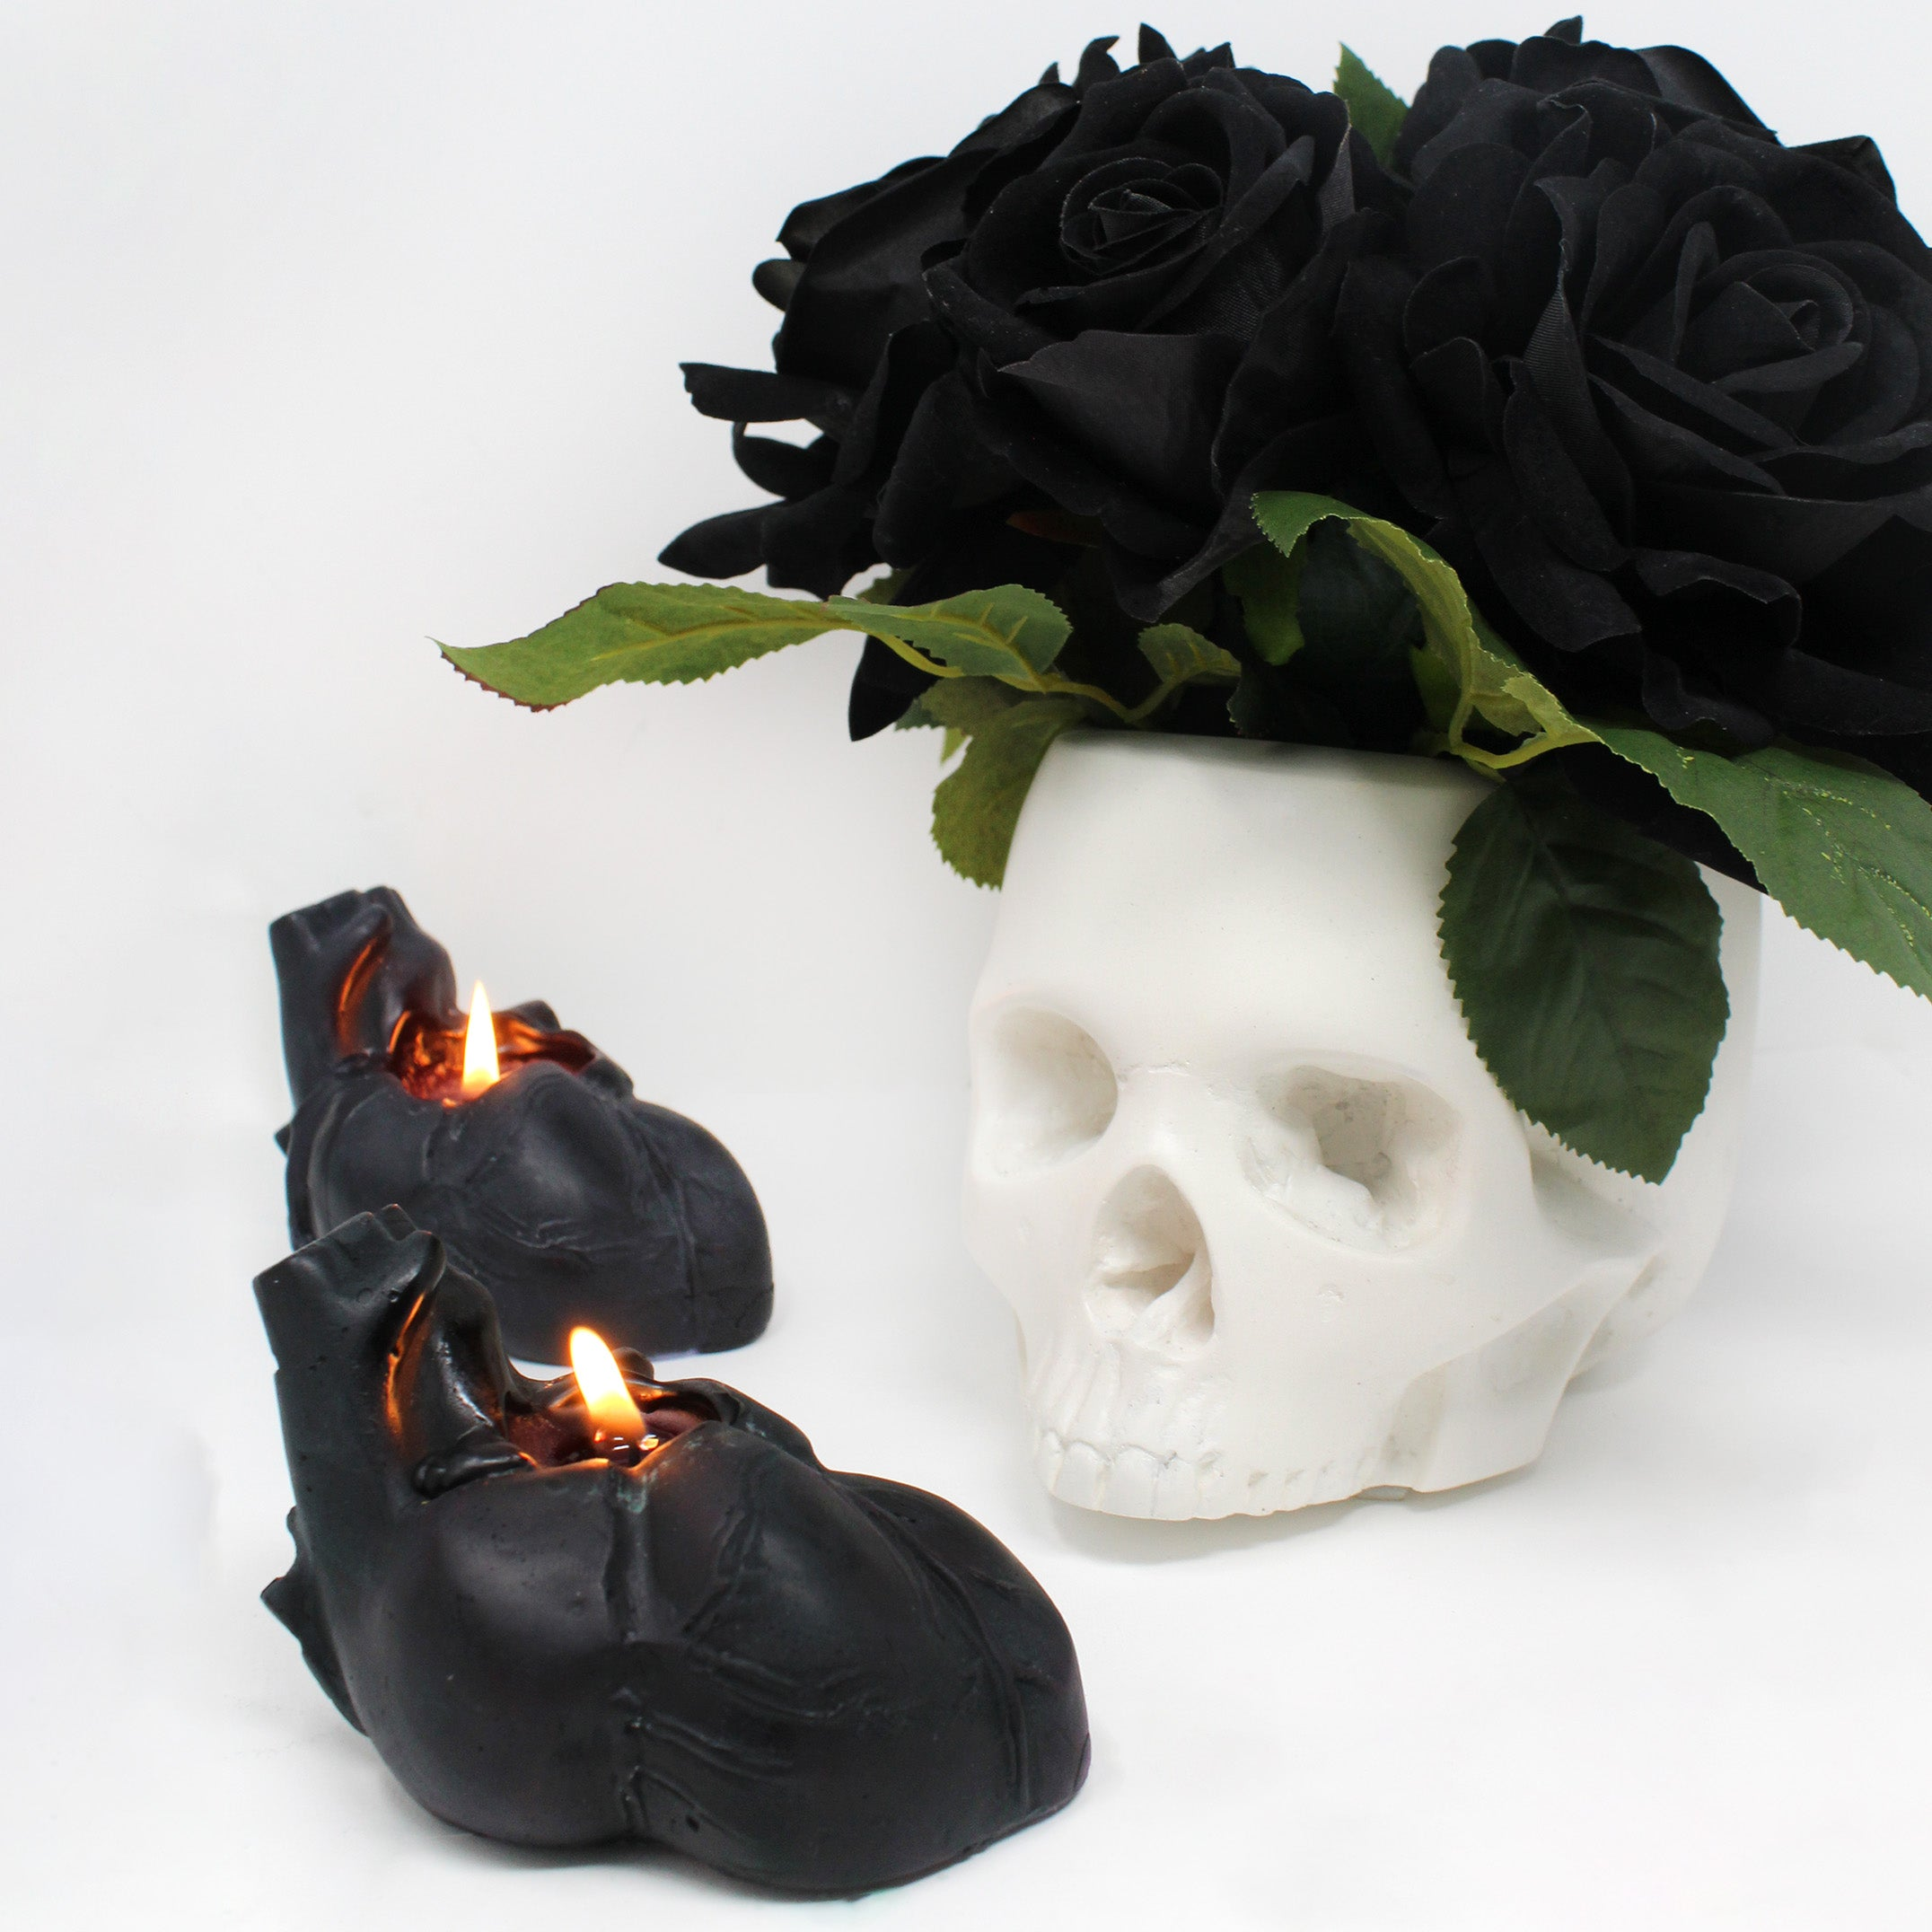 Morticia Flowerhead, The Blackened Teeth